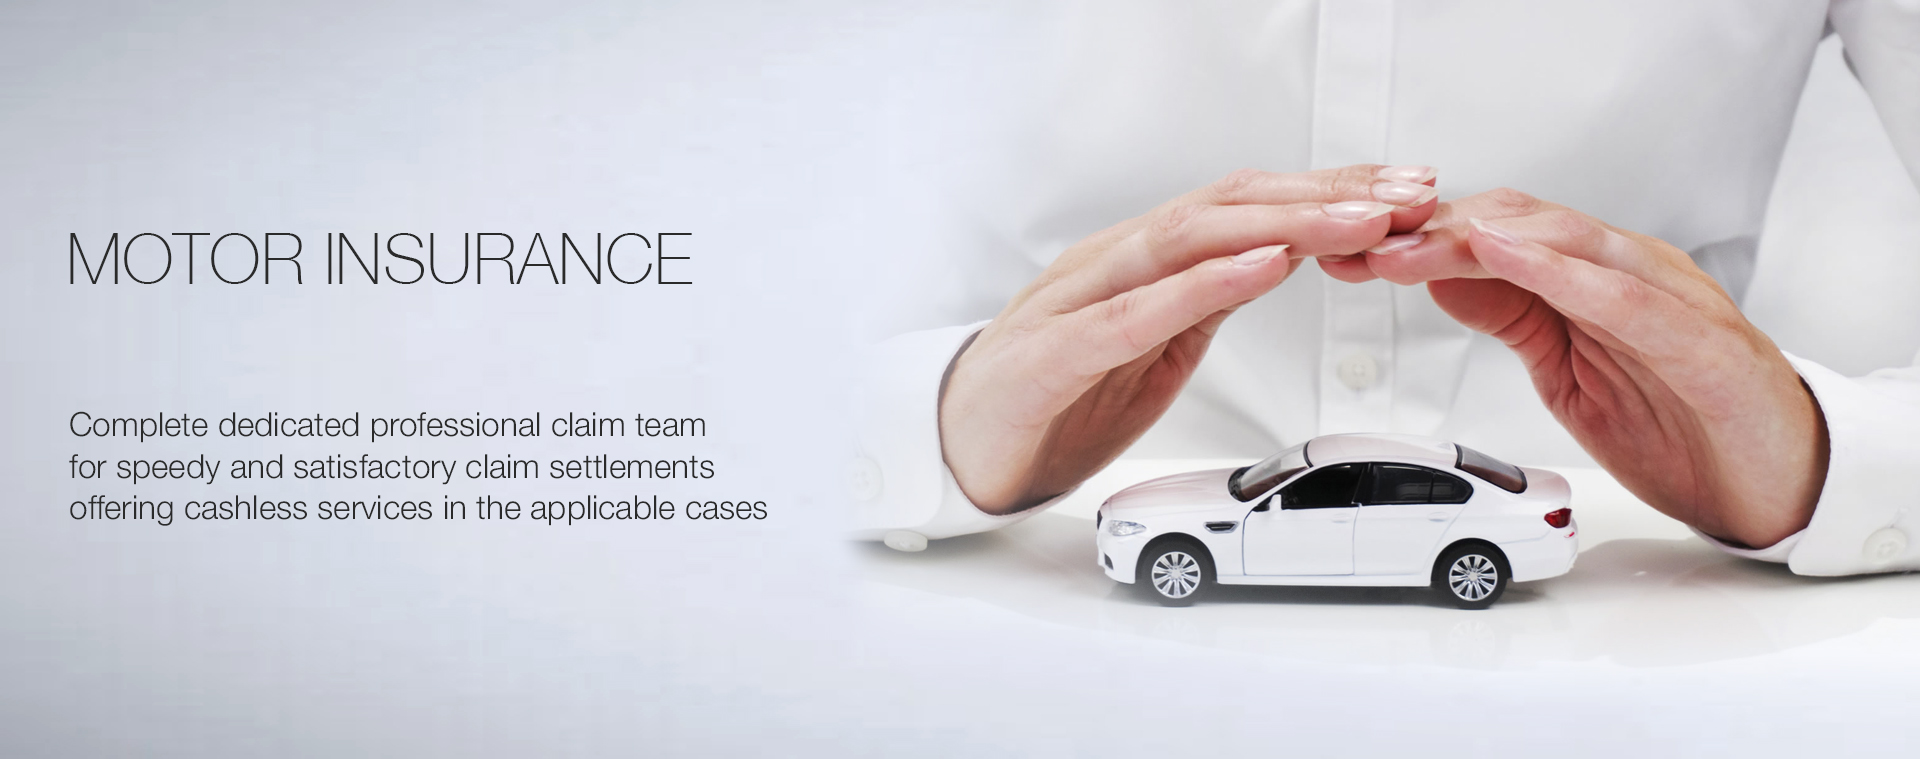 Motor Insurance - Relleno Insurance Broking Services Pvt Ltd